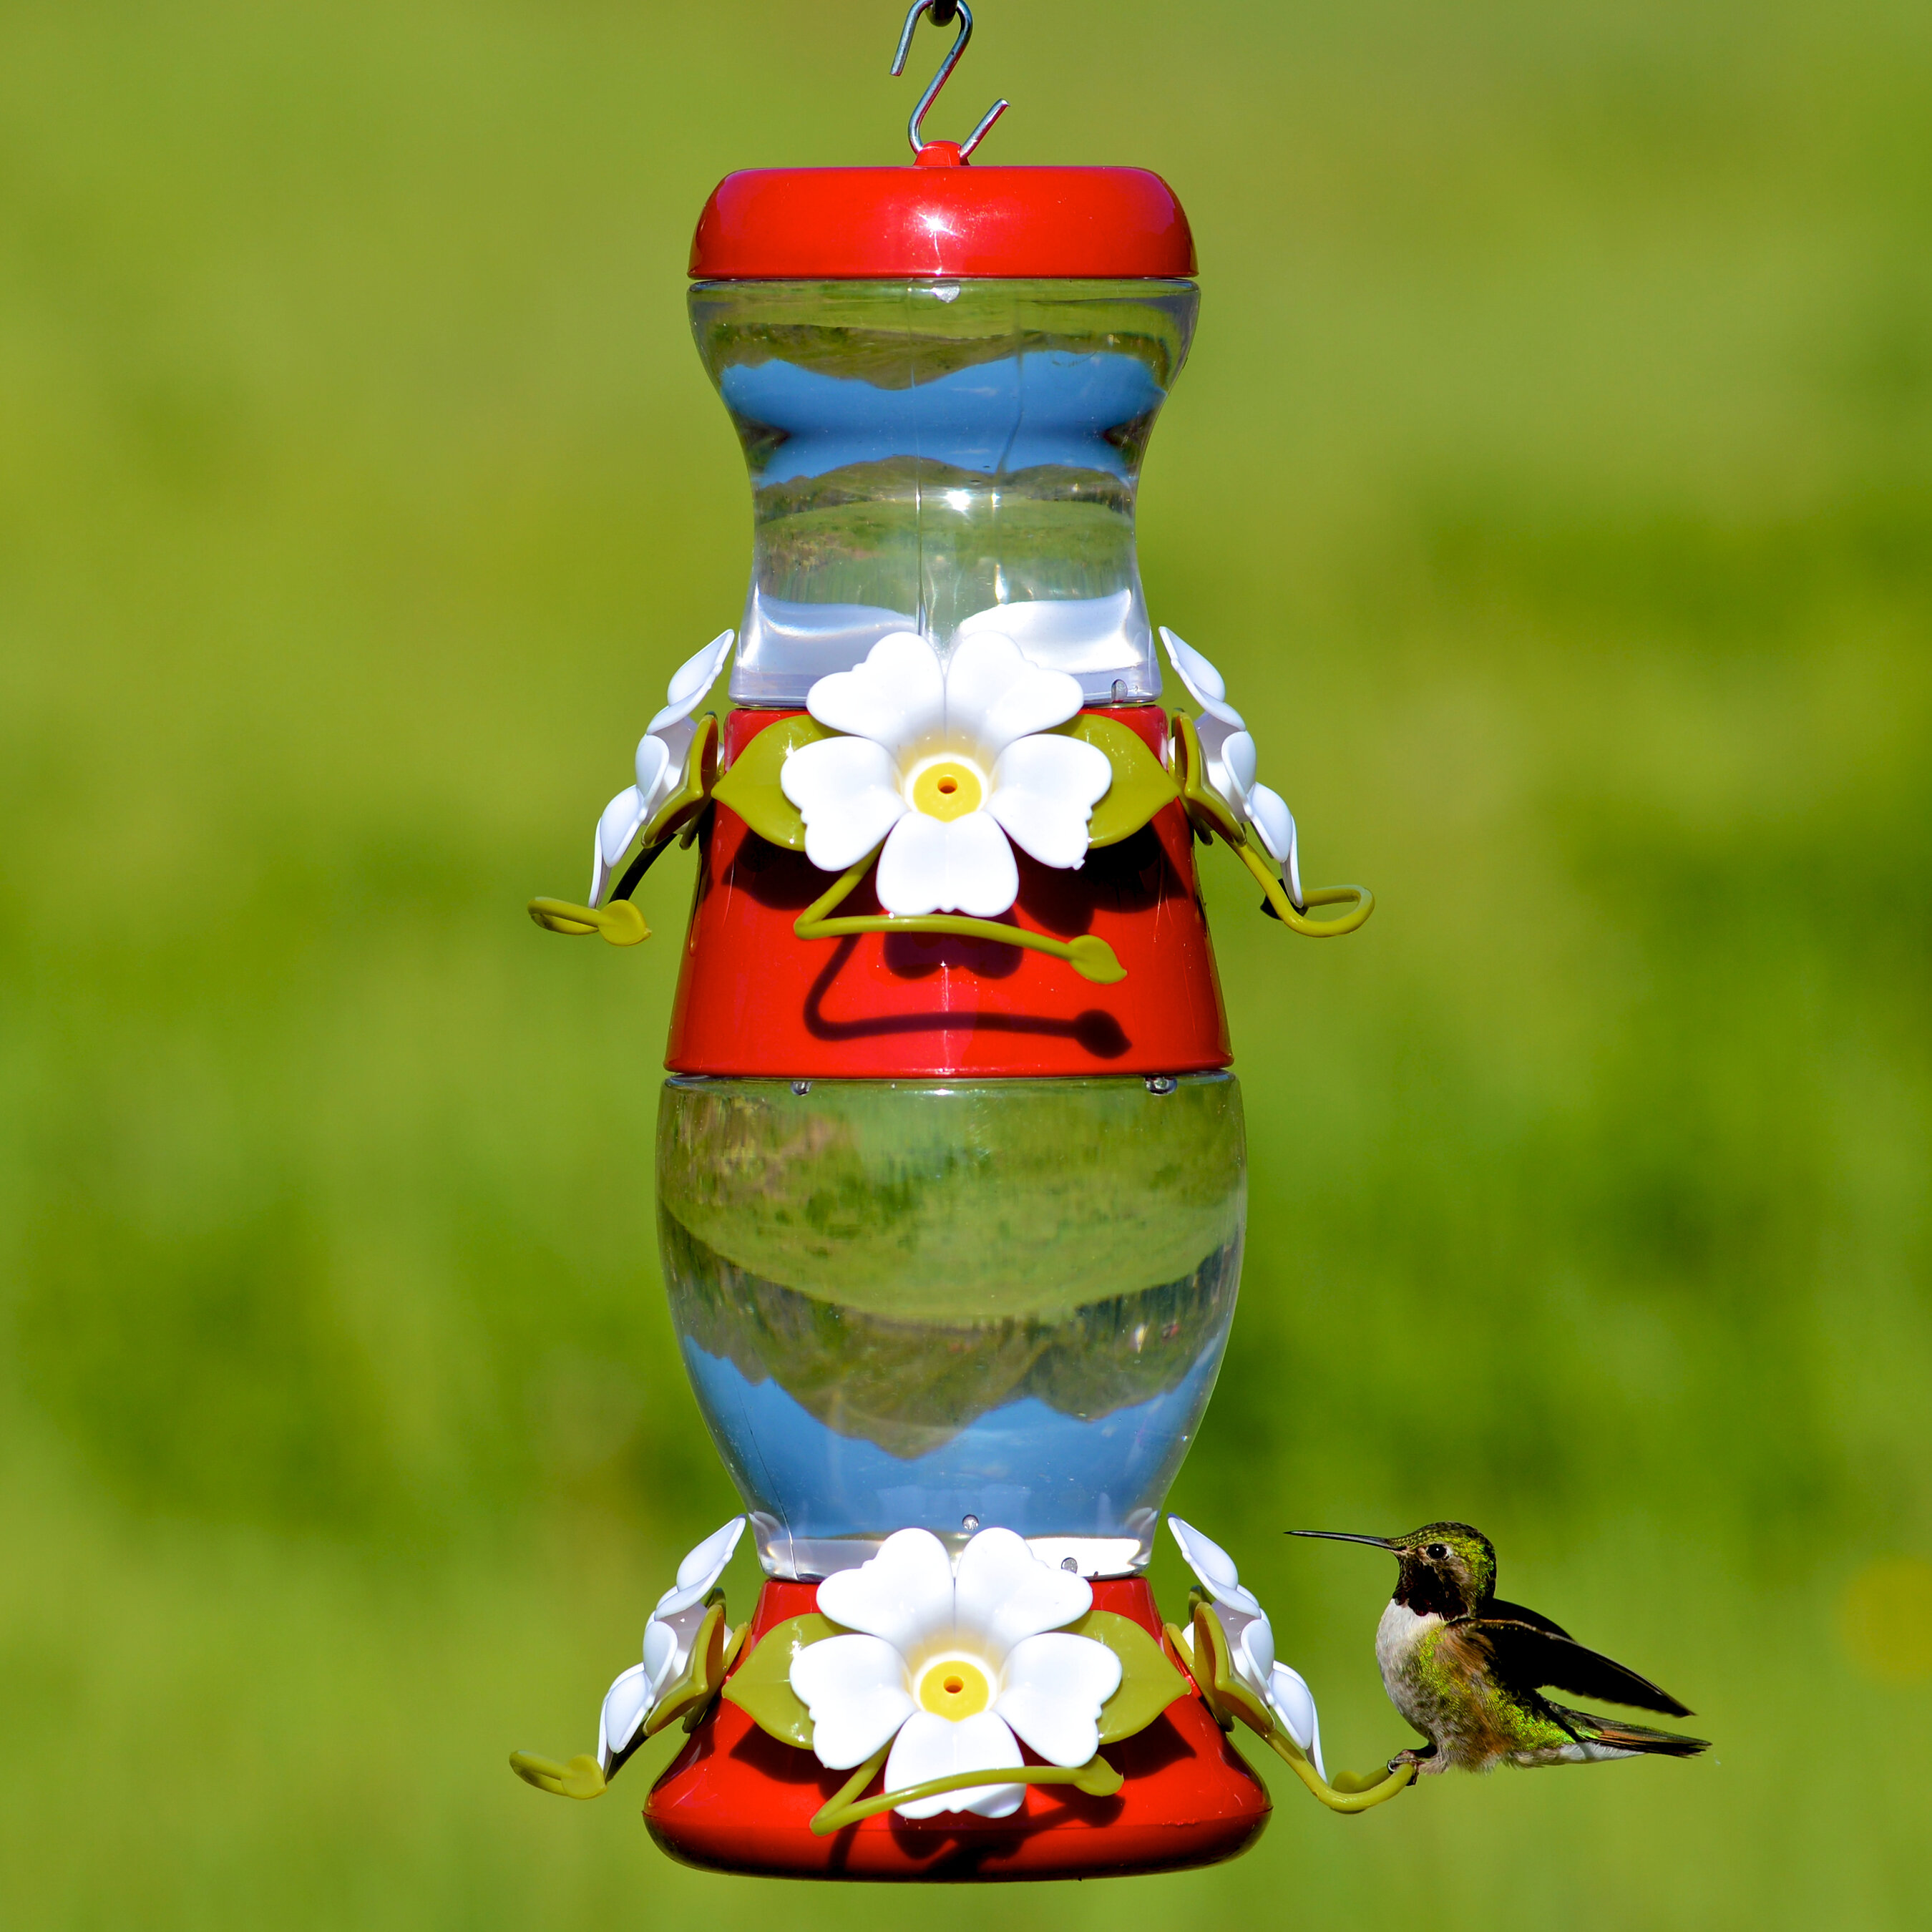 high full bird unique image for hummingbird excel hummzinger fascinating decorative feeder fancy feeders aspects